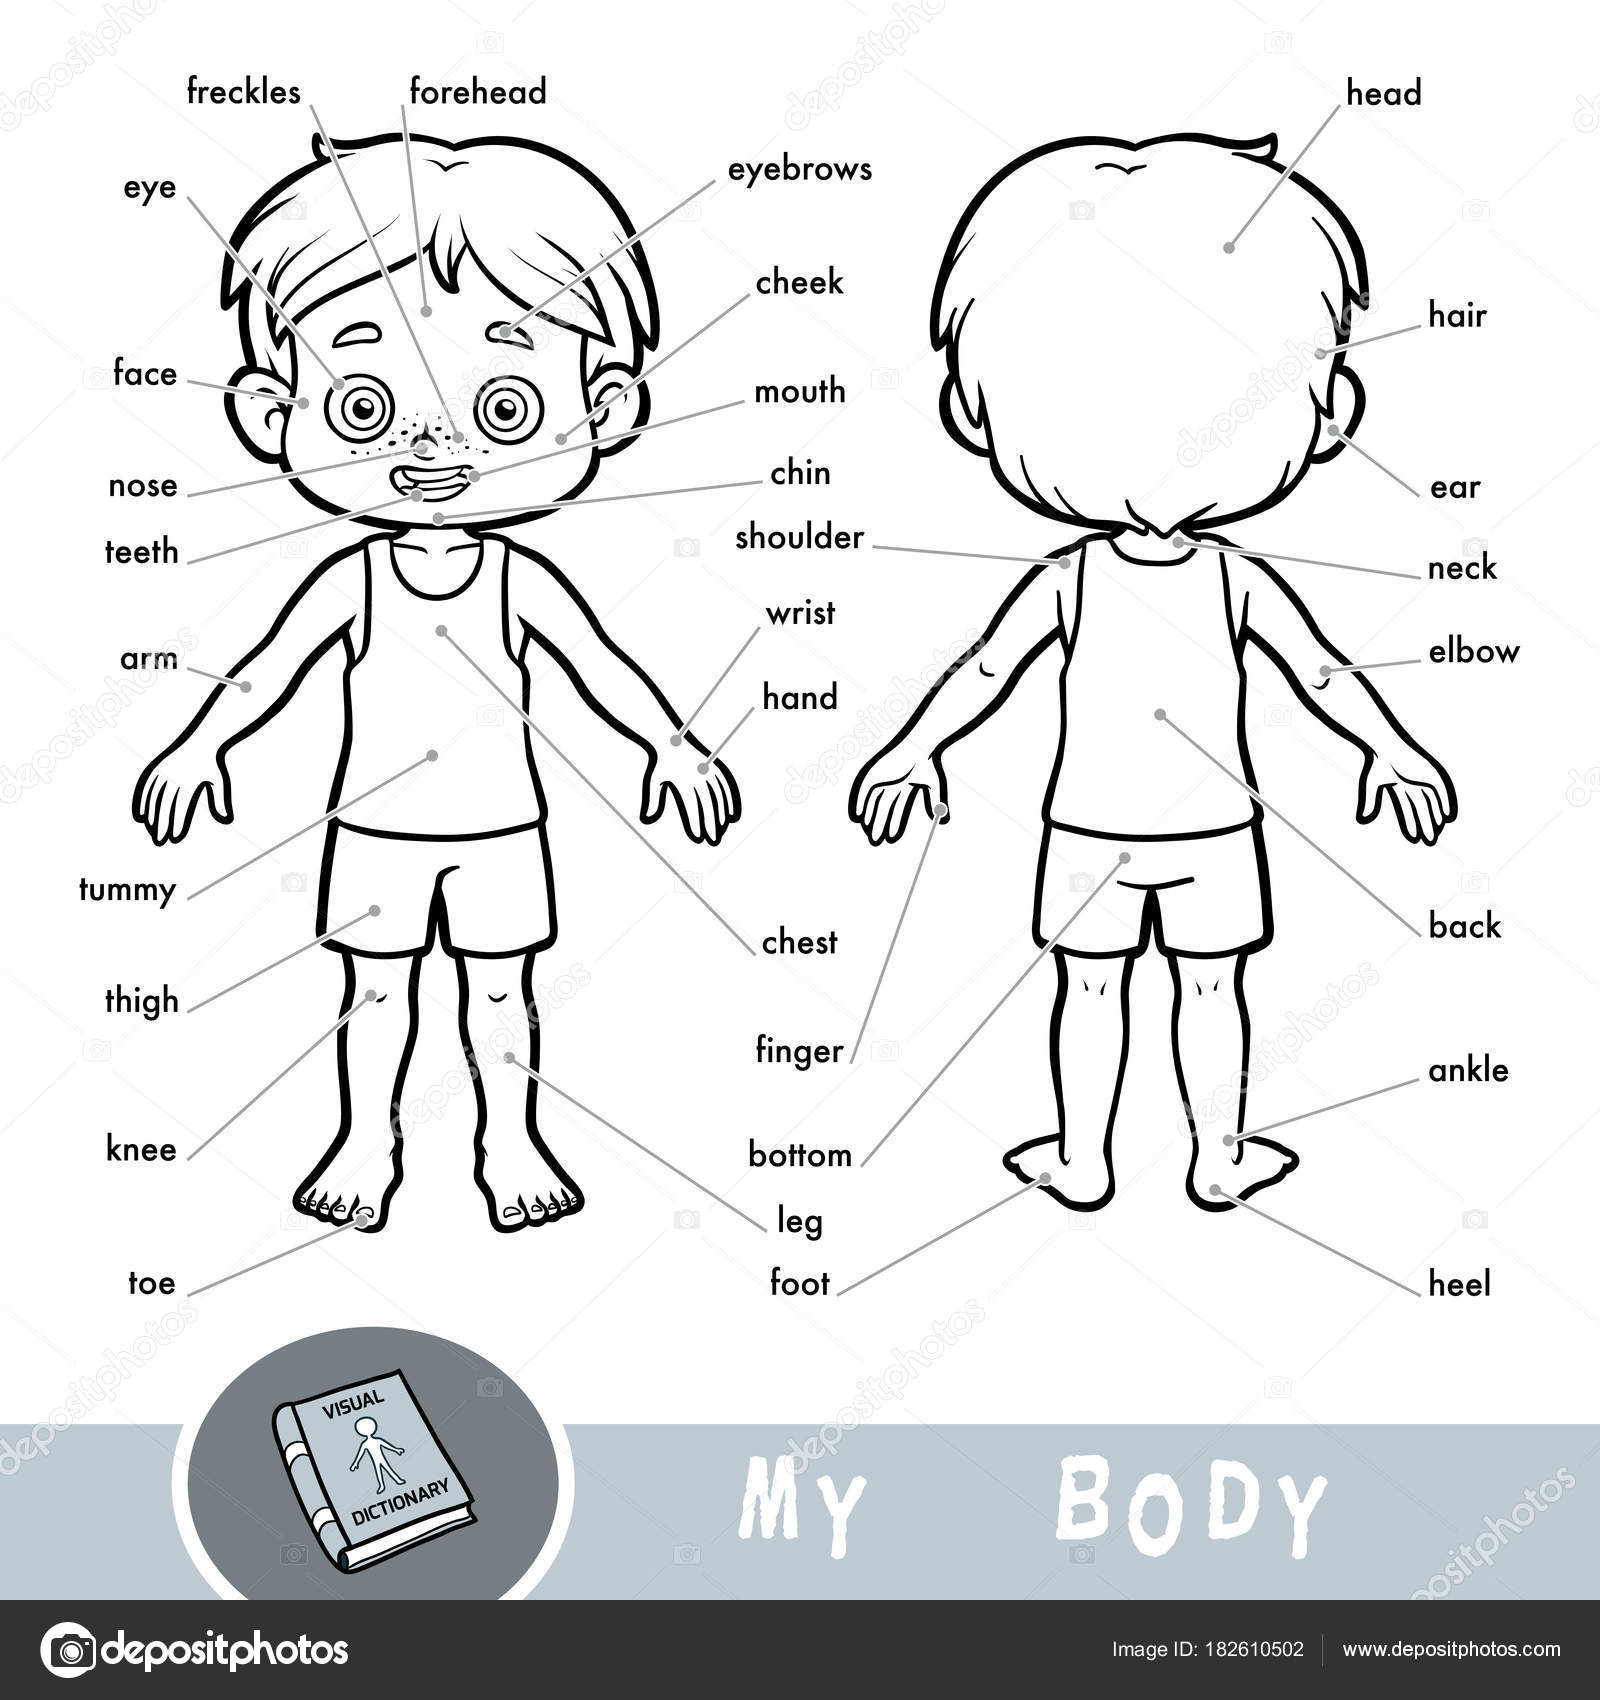 Worksheet Human Body Parts